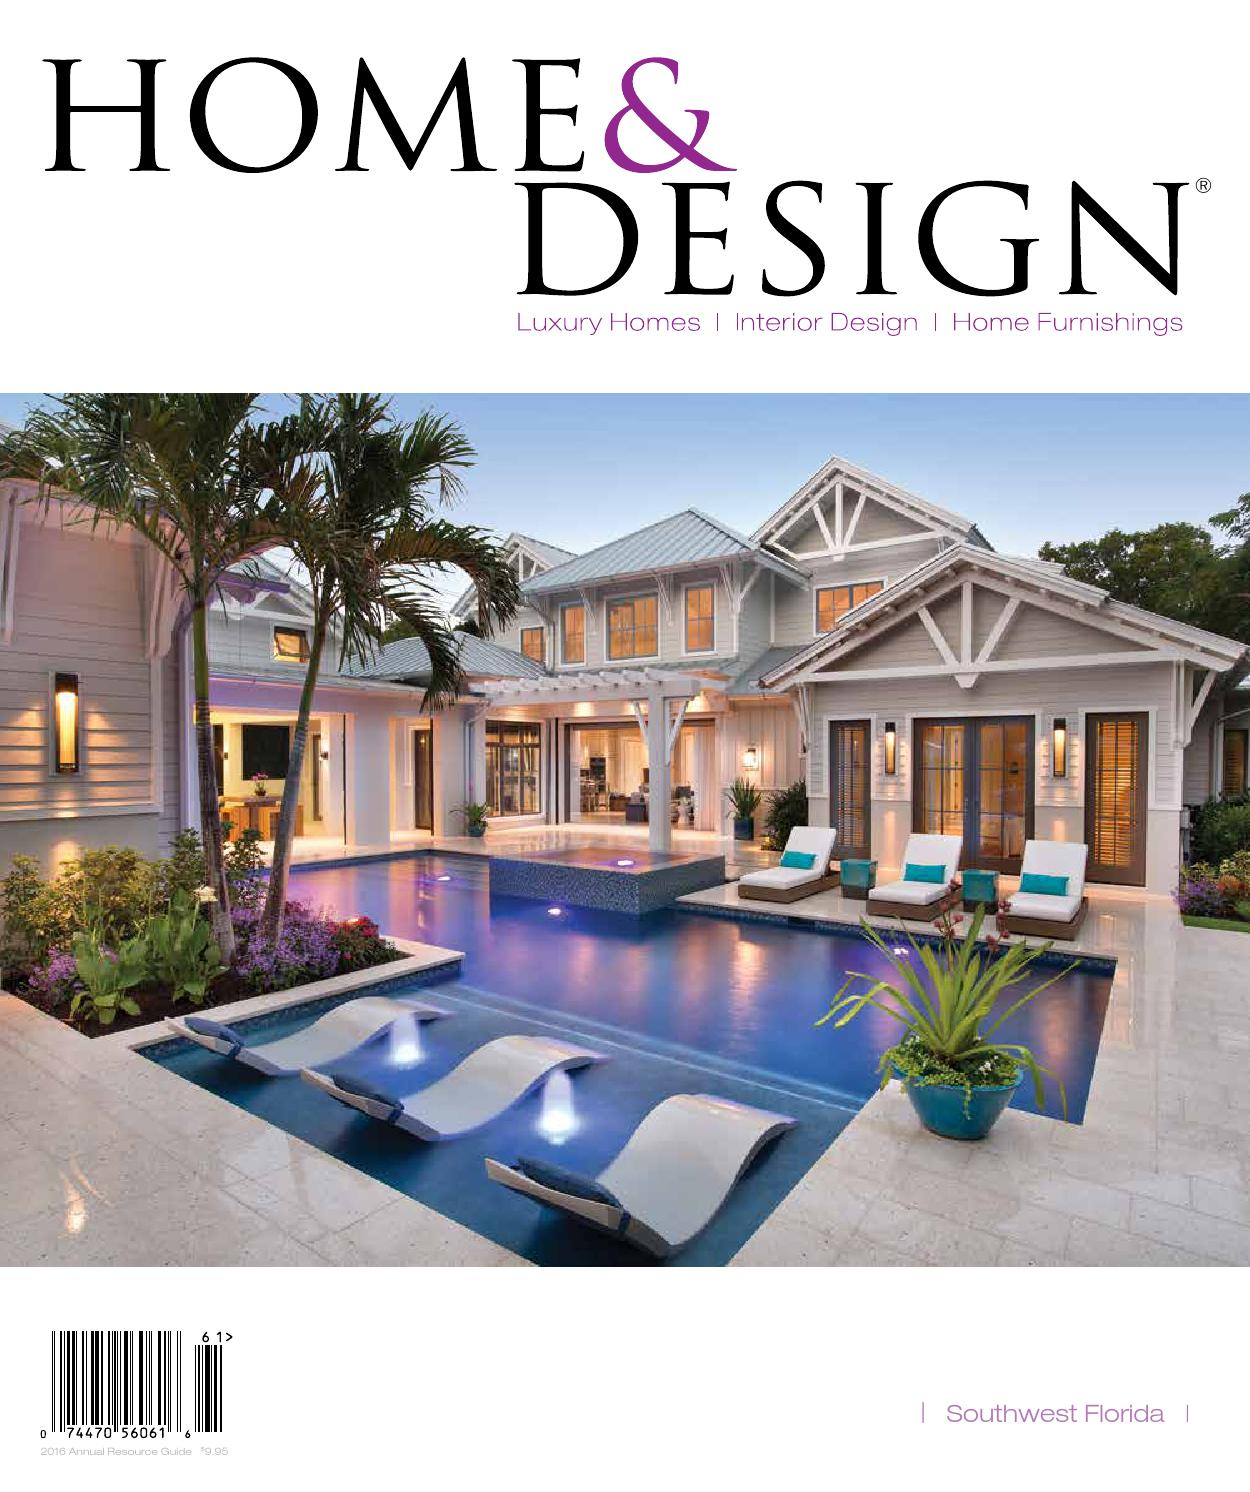 Attractive Home U0026 Design Magazine | Annual Resource Guide 2016 | Southwest Florida  Edition By Anthony Spano   Issuu